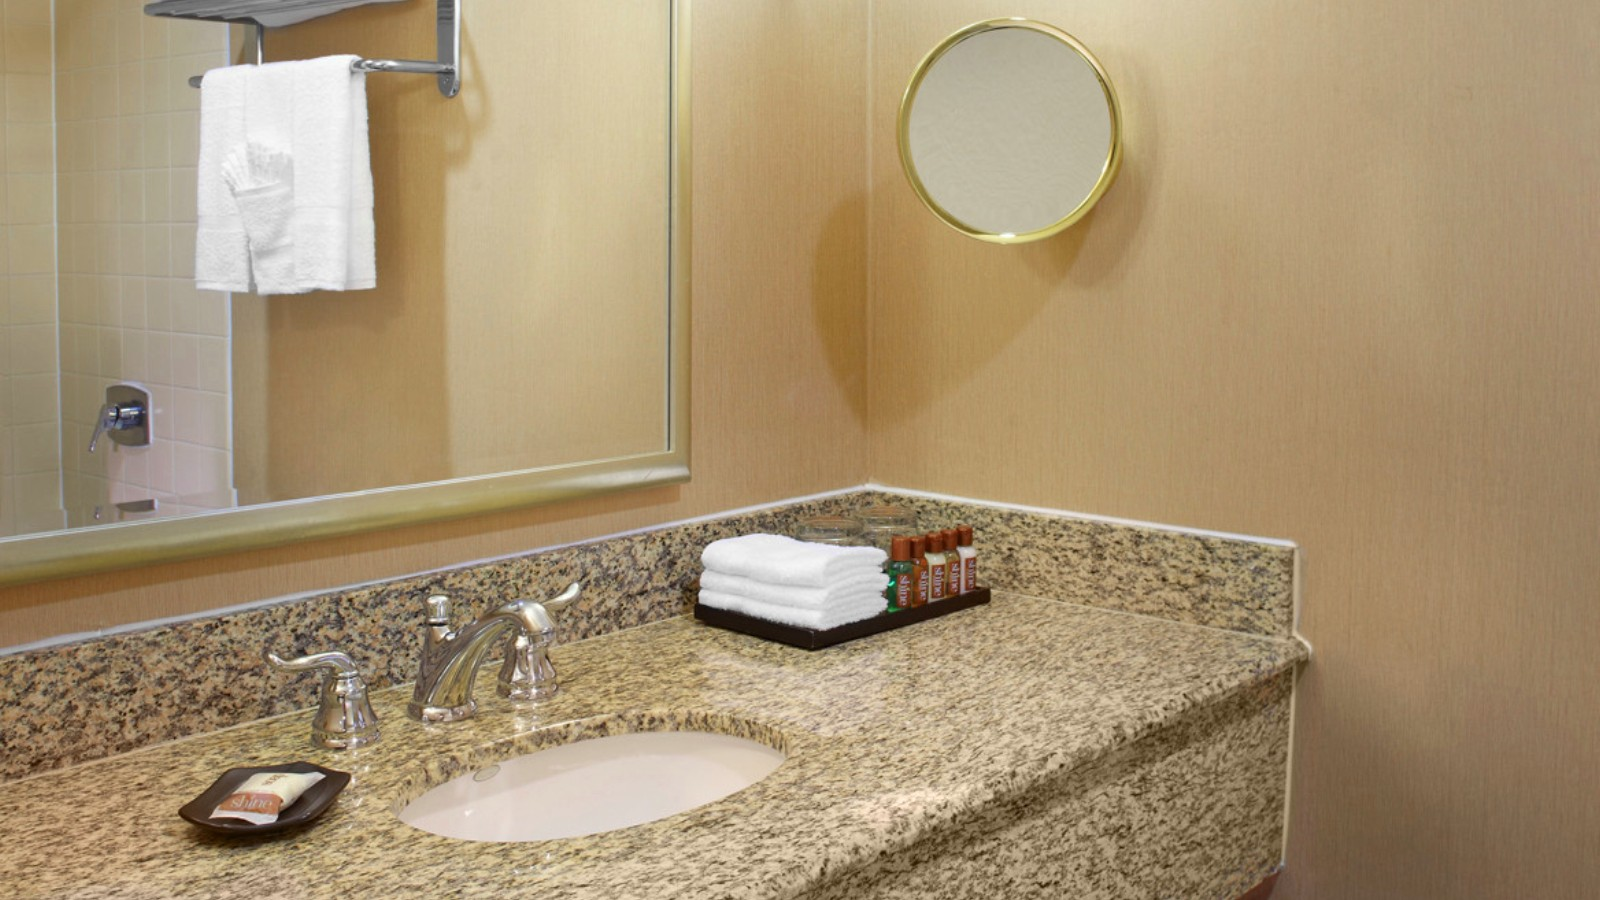 https://www.hotelsbyday.com/_data/default-hotel_image/0/2651/sheratonhoustonbrookhollowhotelkingguestroombathroom.jpg